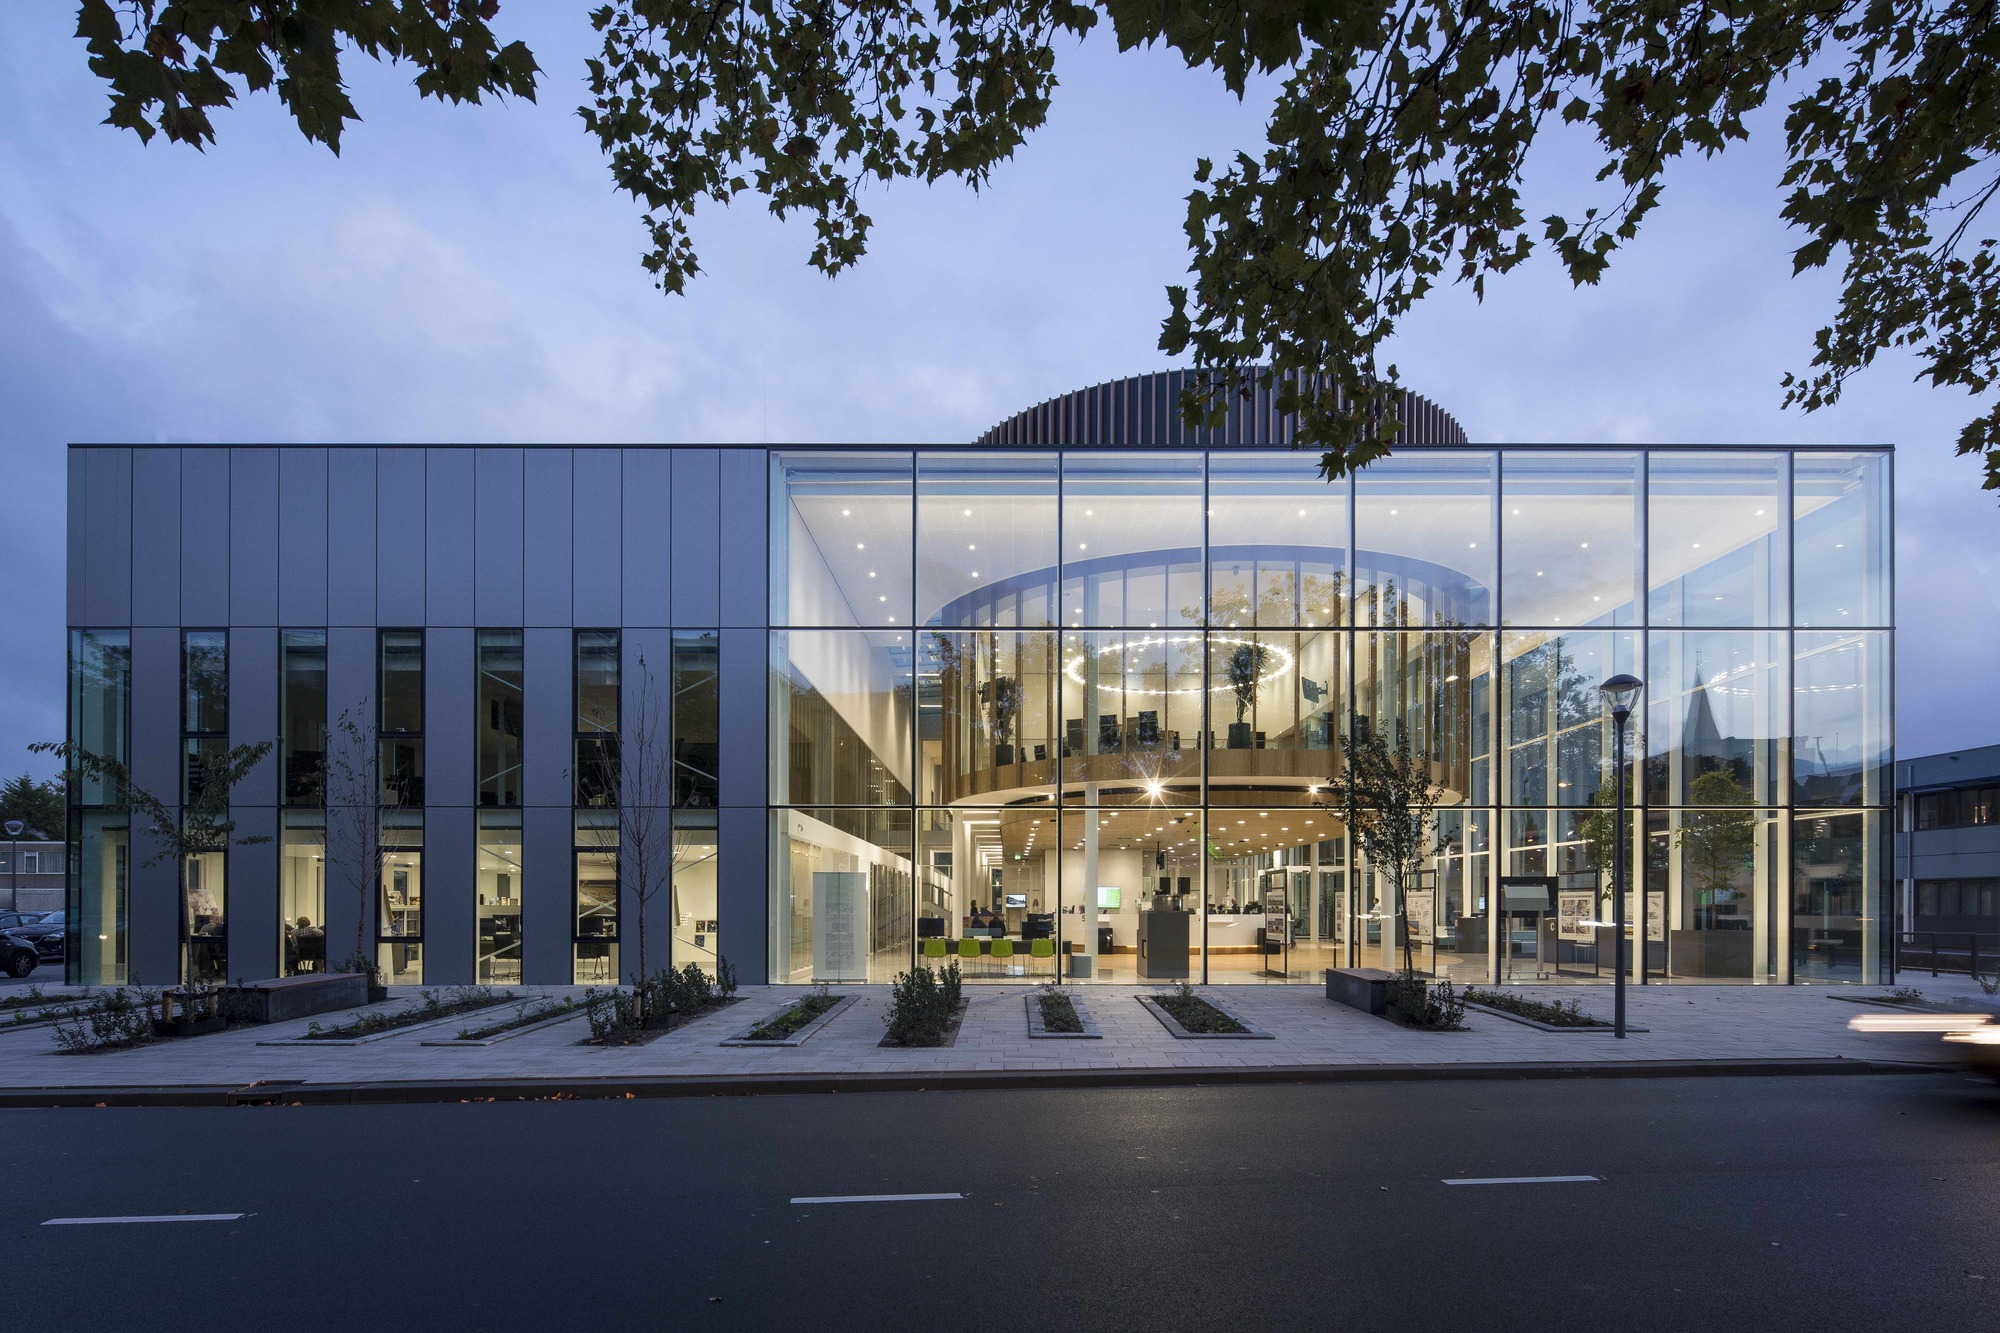 Westland Town Hall / architectenbureau cepezed | ArchDaily